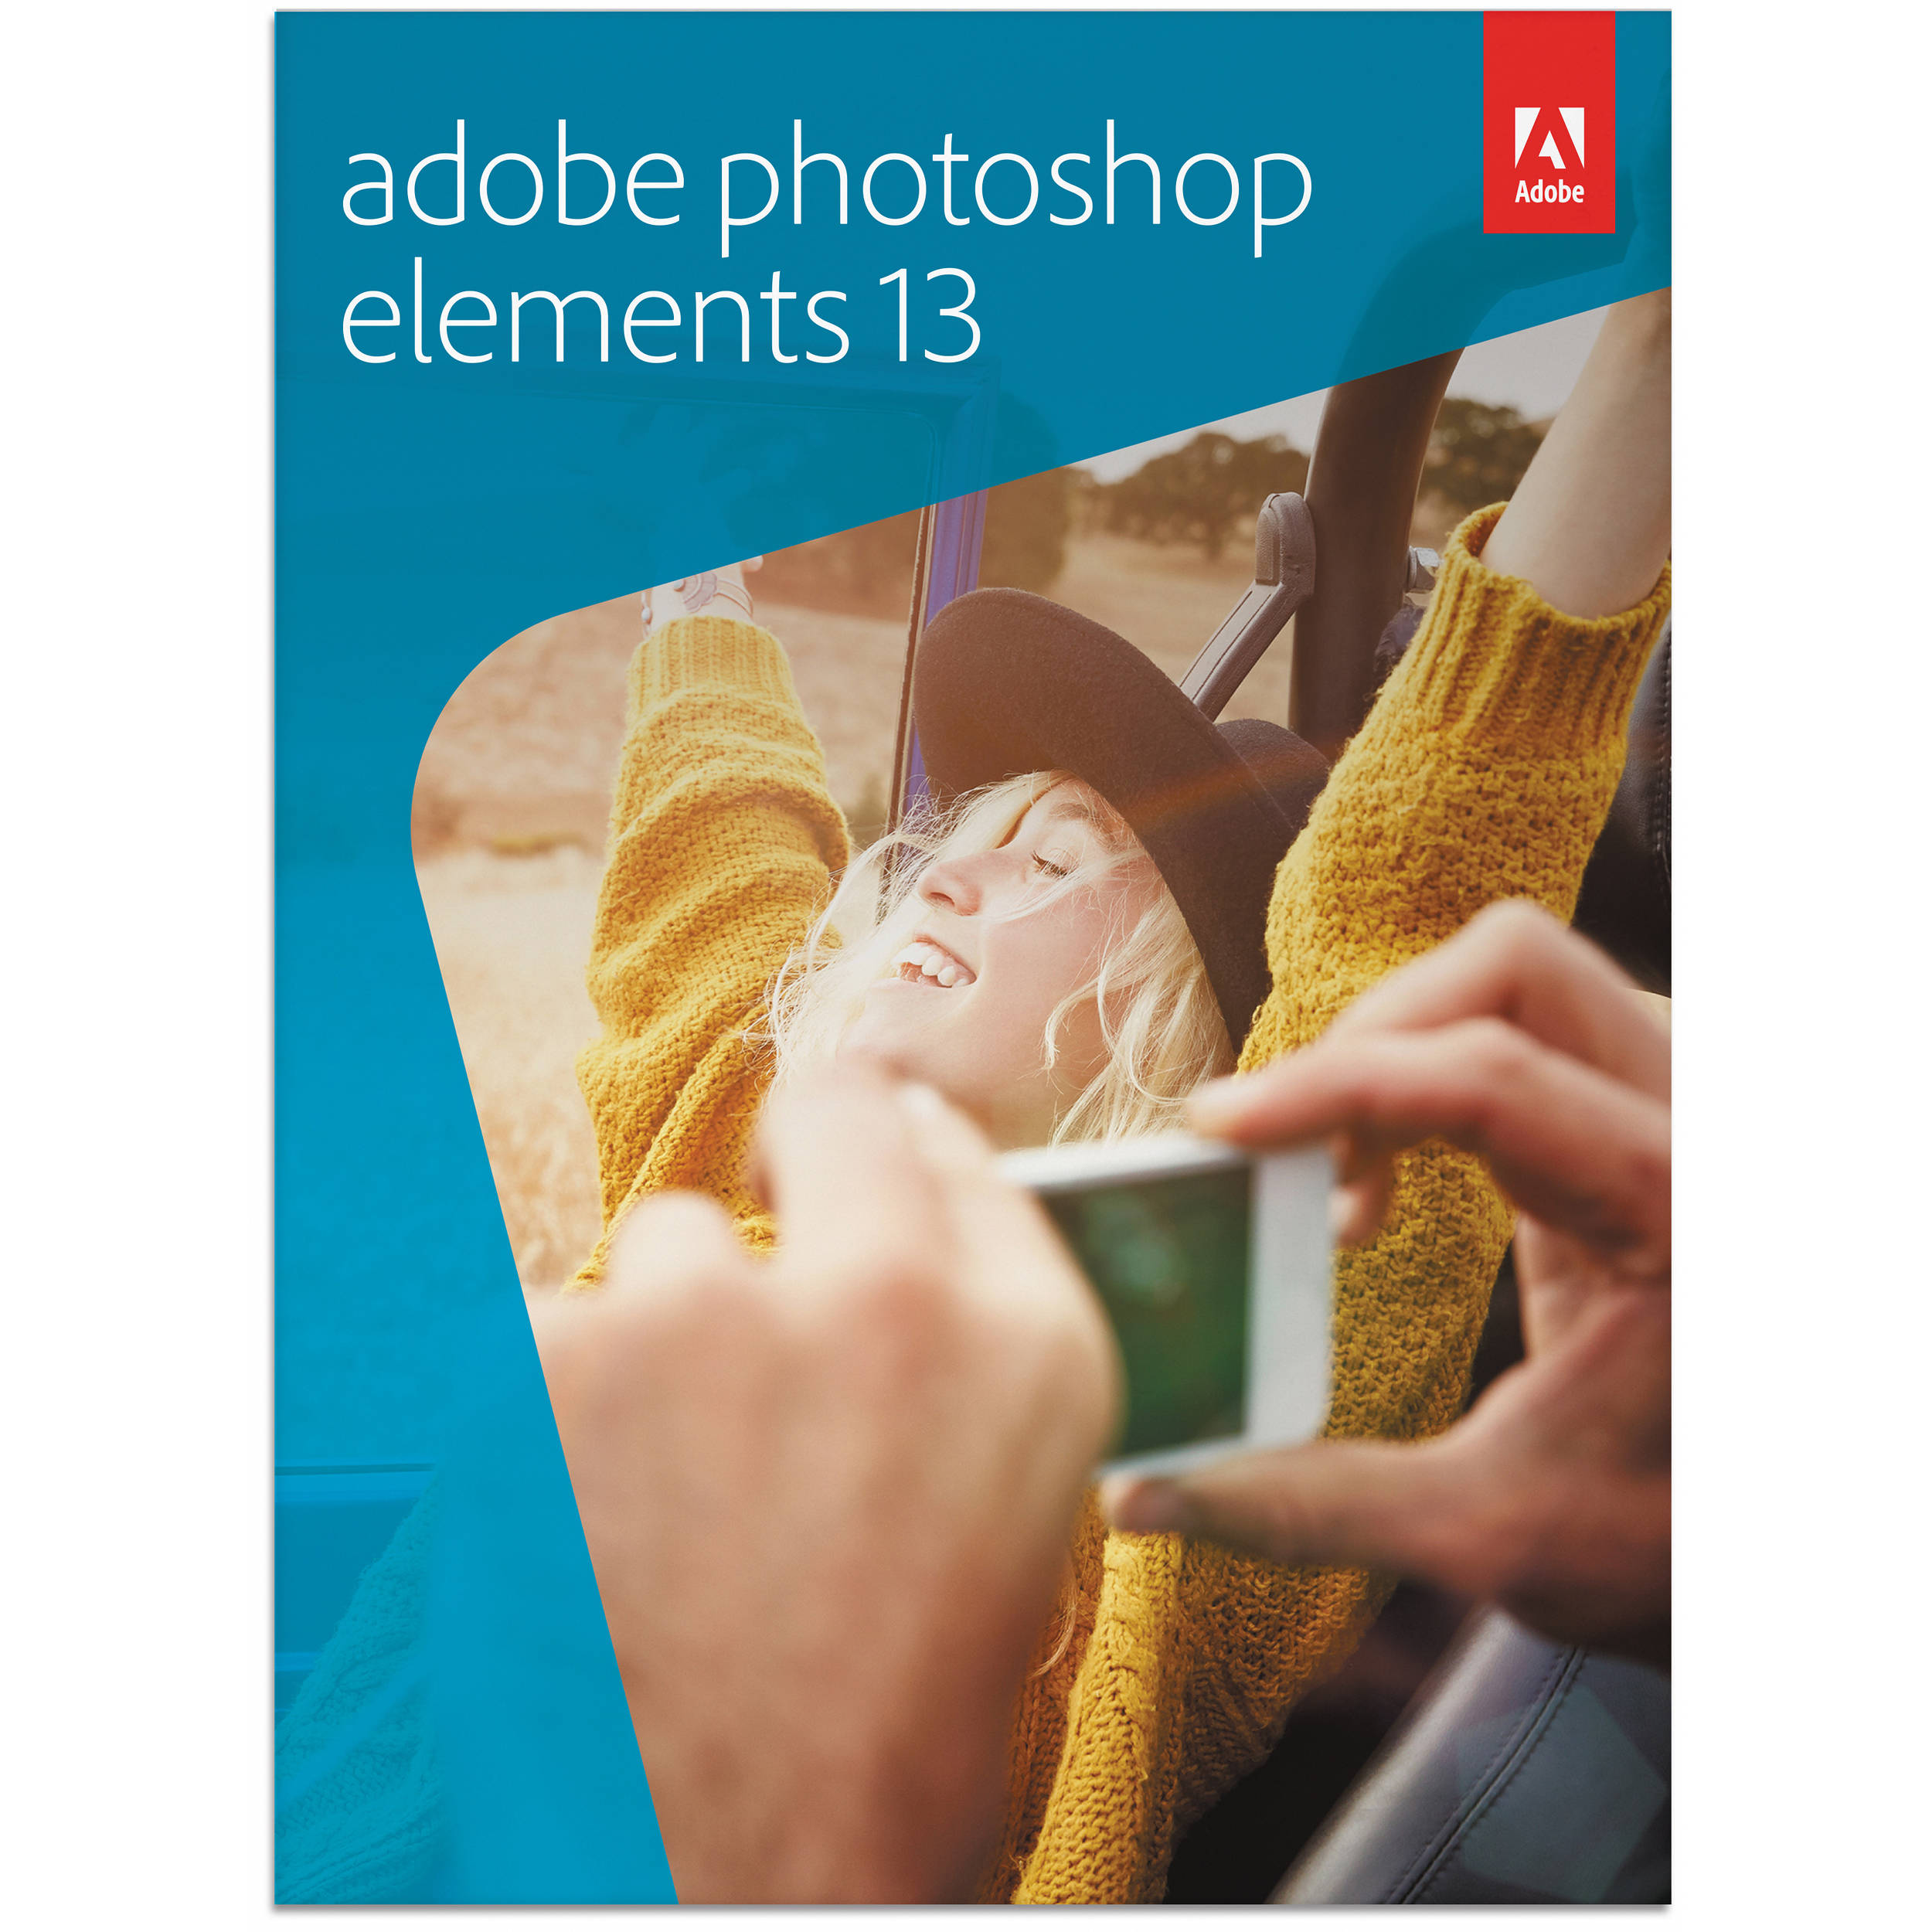 adobe photoshop elements for macintosh